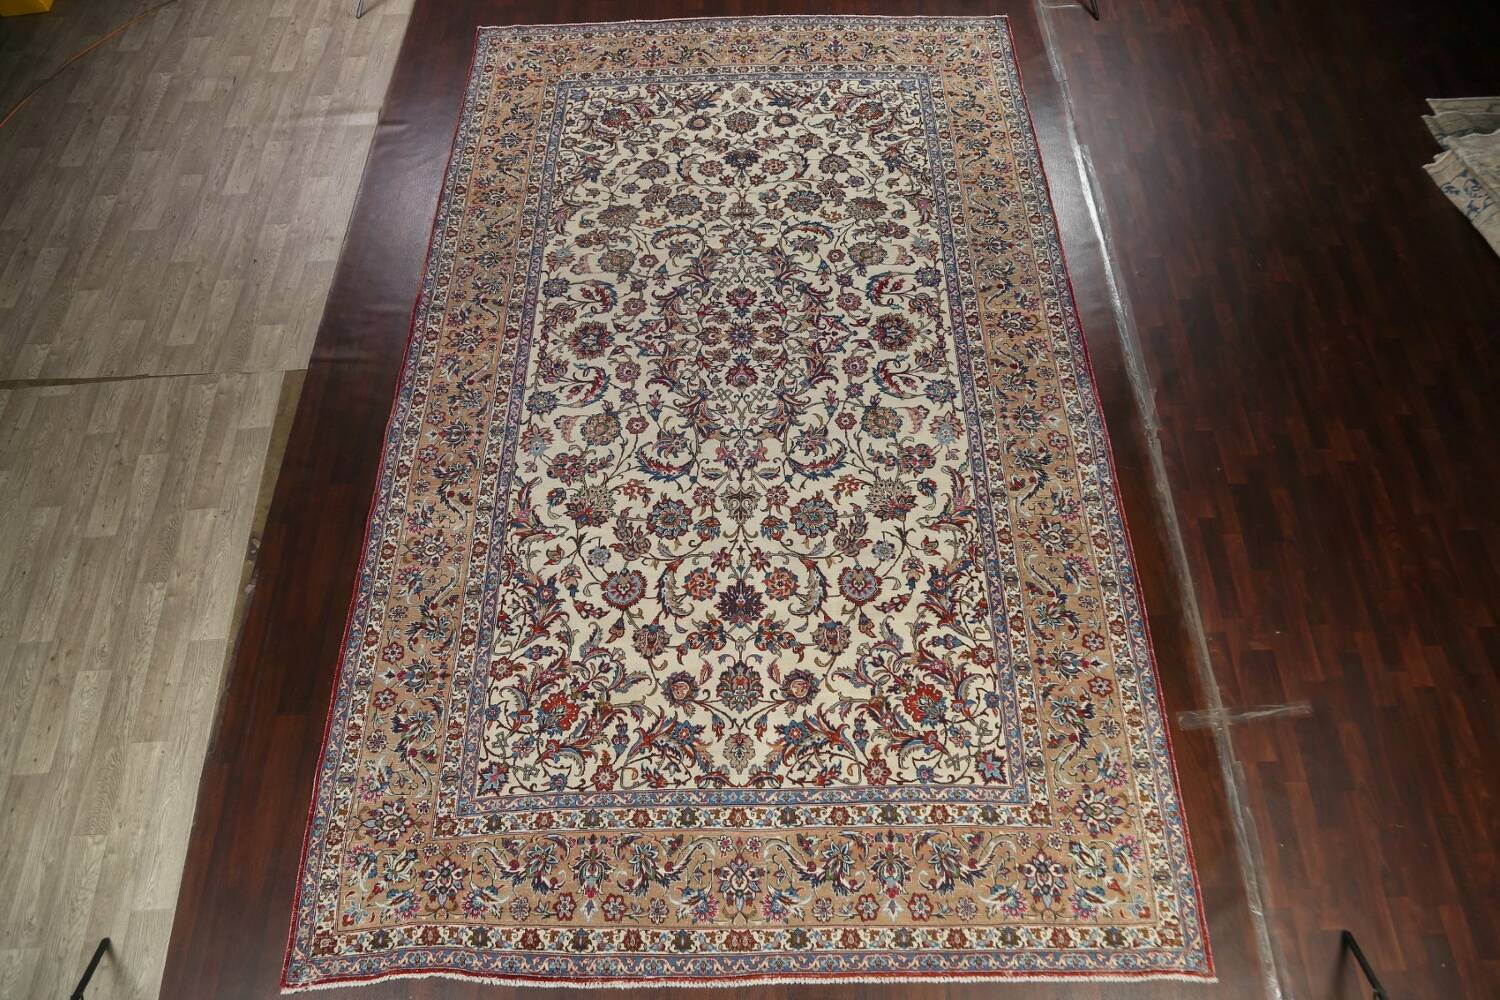 Antique Wool Oversized Isfahan Persian Rug 10x17 image 15